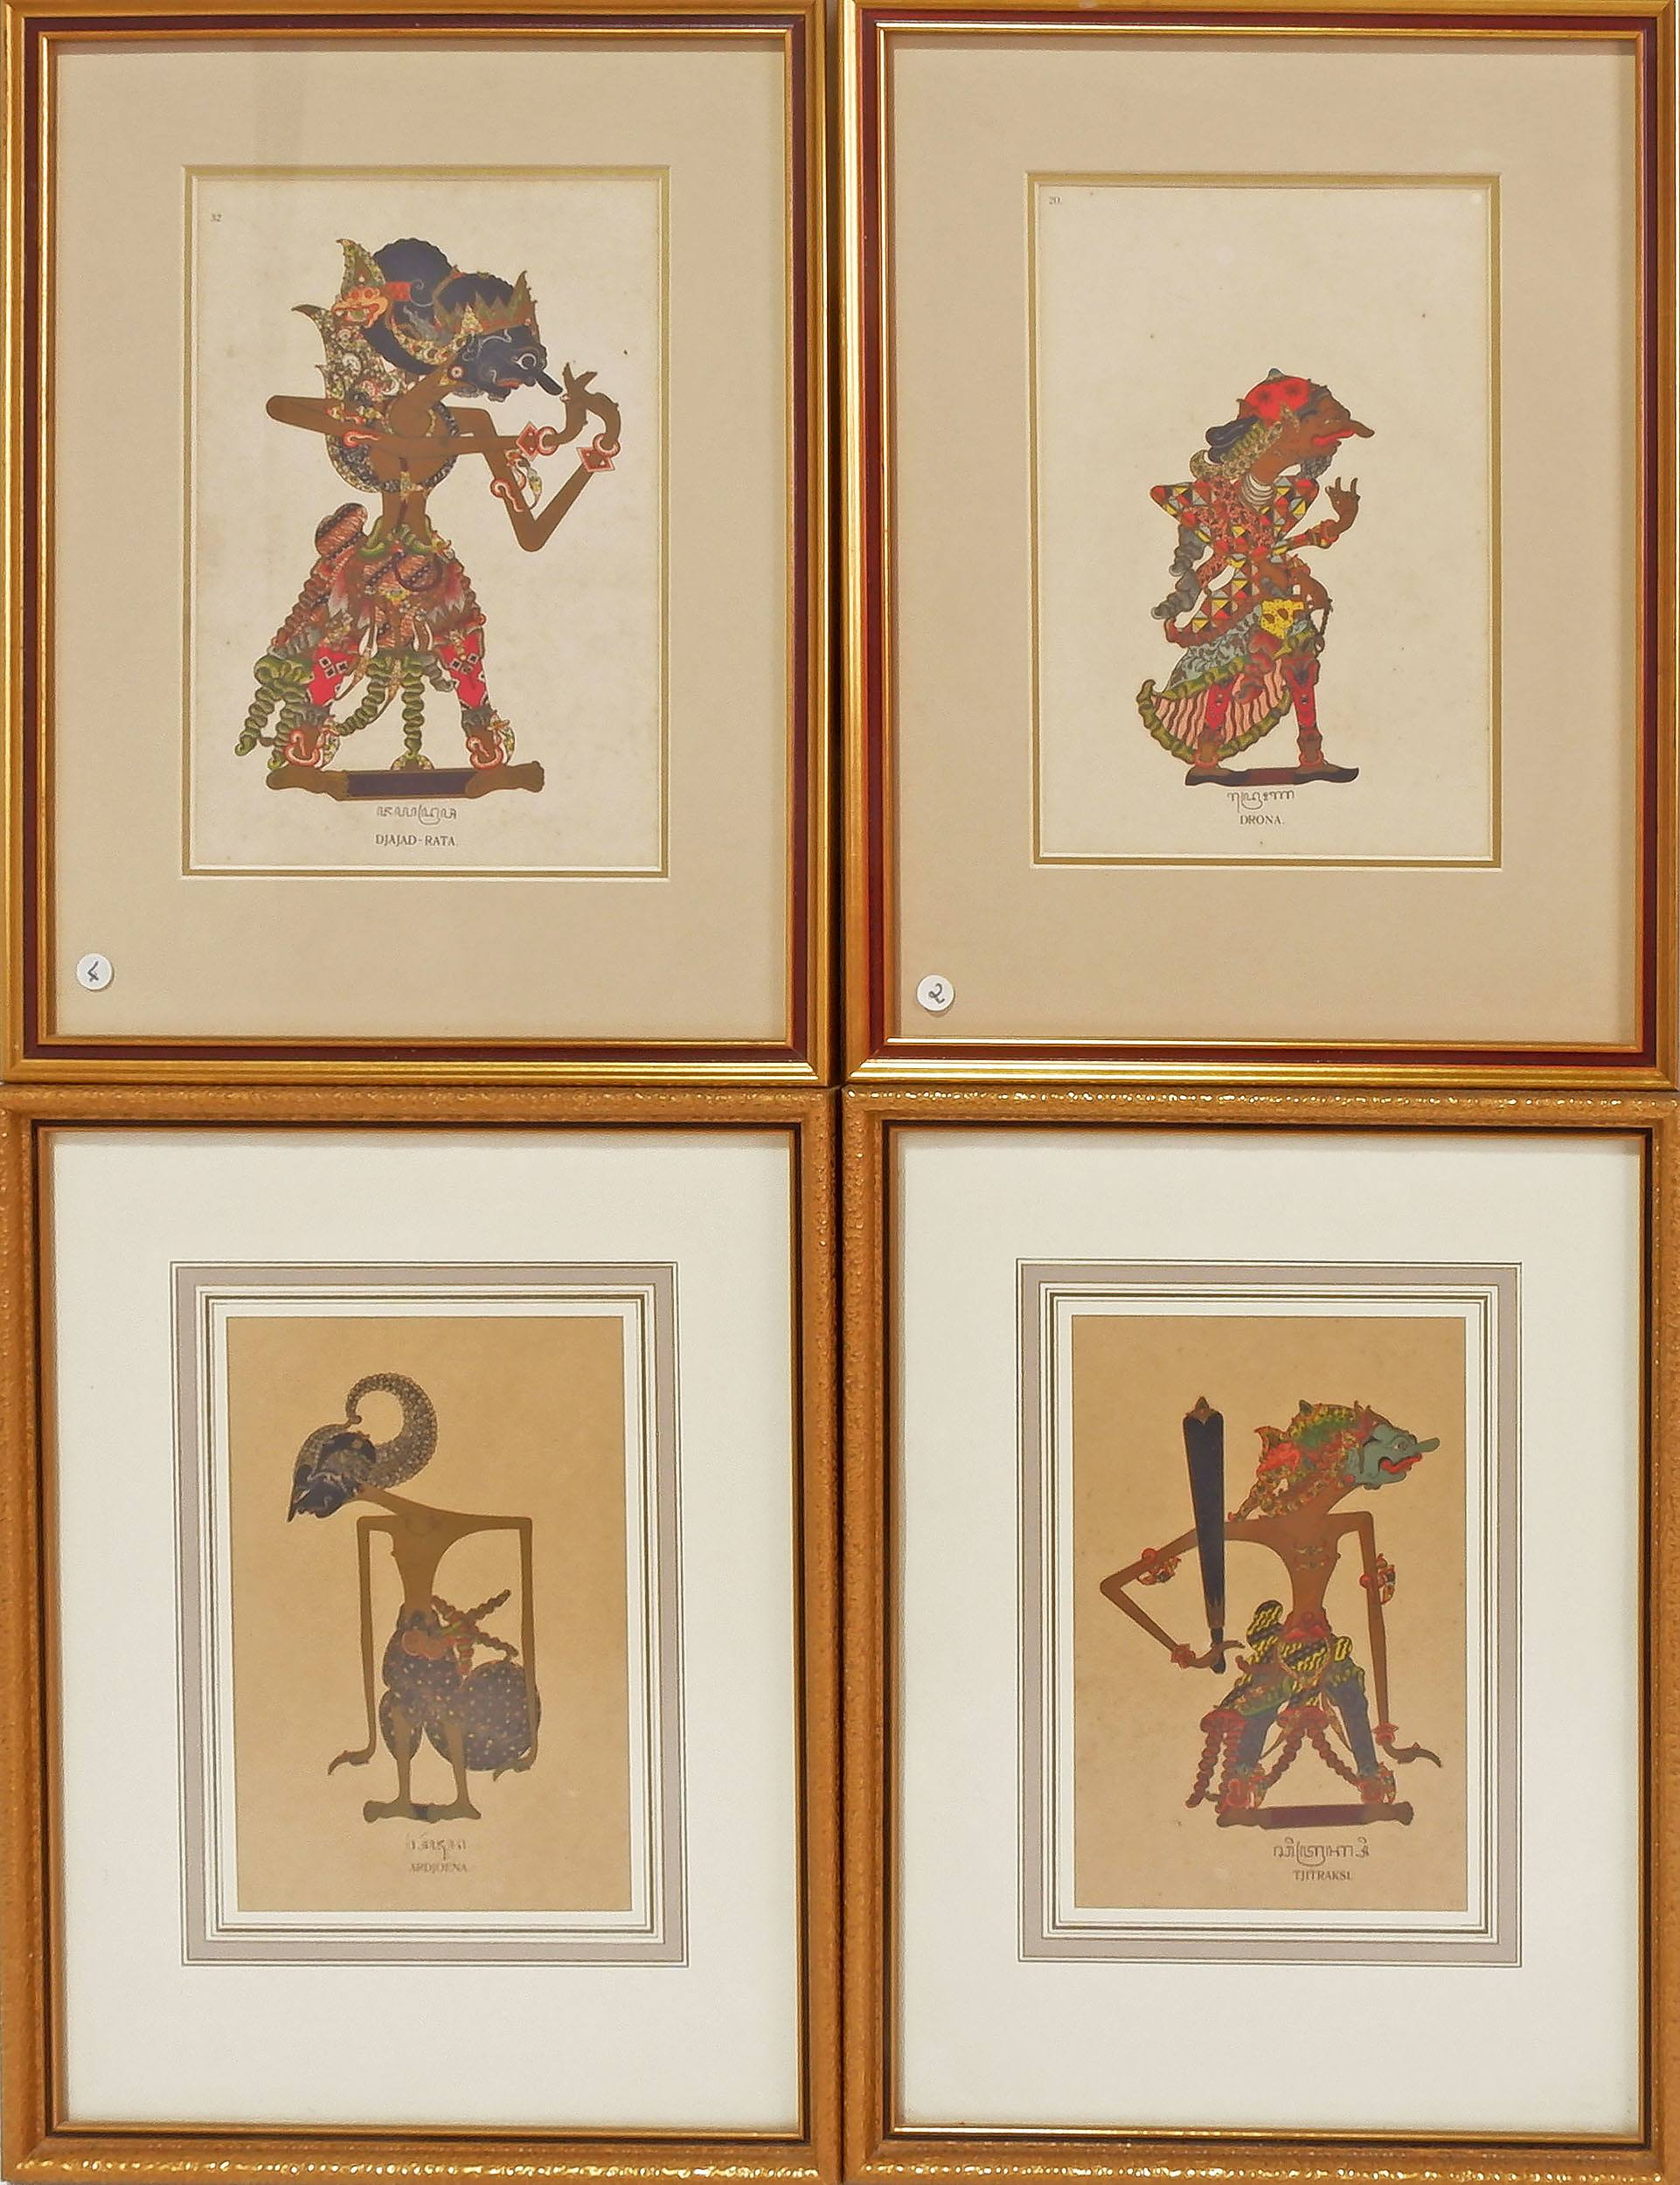 'Group of Four Framed Indonesian Puppet Series Including Ardjoena, Djajad-Rata, Drona and Tjitraksi'